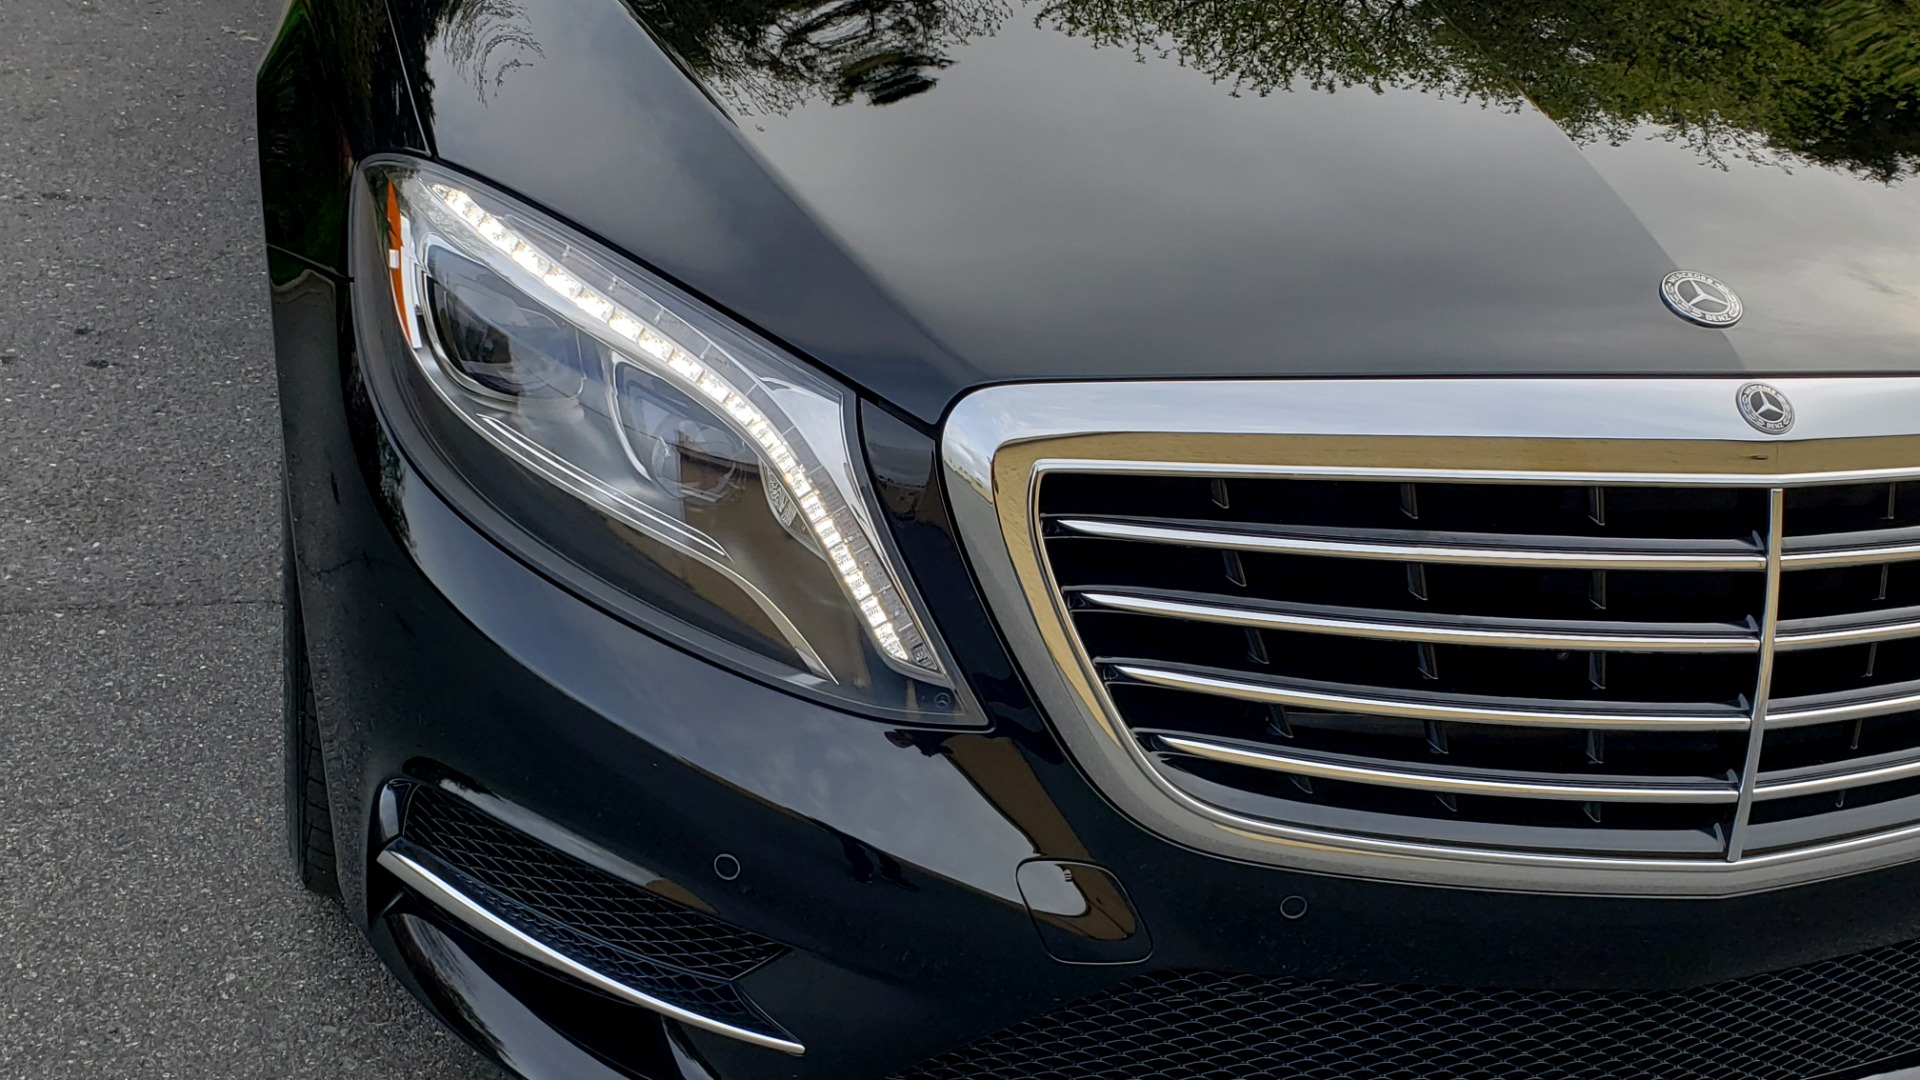 Used 2017 Mercedes-Benz S-CLASS S 550 4MATIC SPORT / PREM PKG / WARMTH & COMFORT / KEYLESS-GO for sale Sold at Formula Imports in Charlotte NC 28227 26